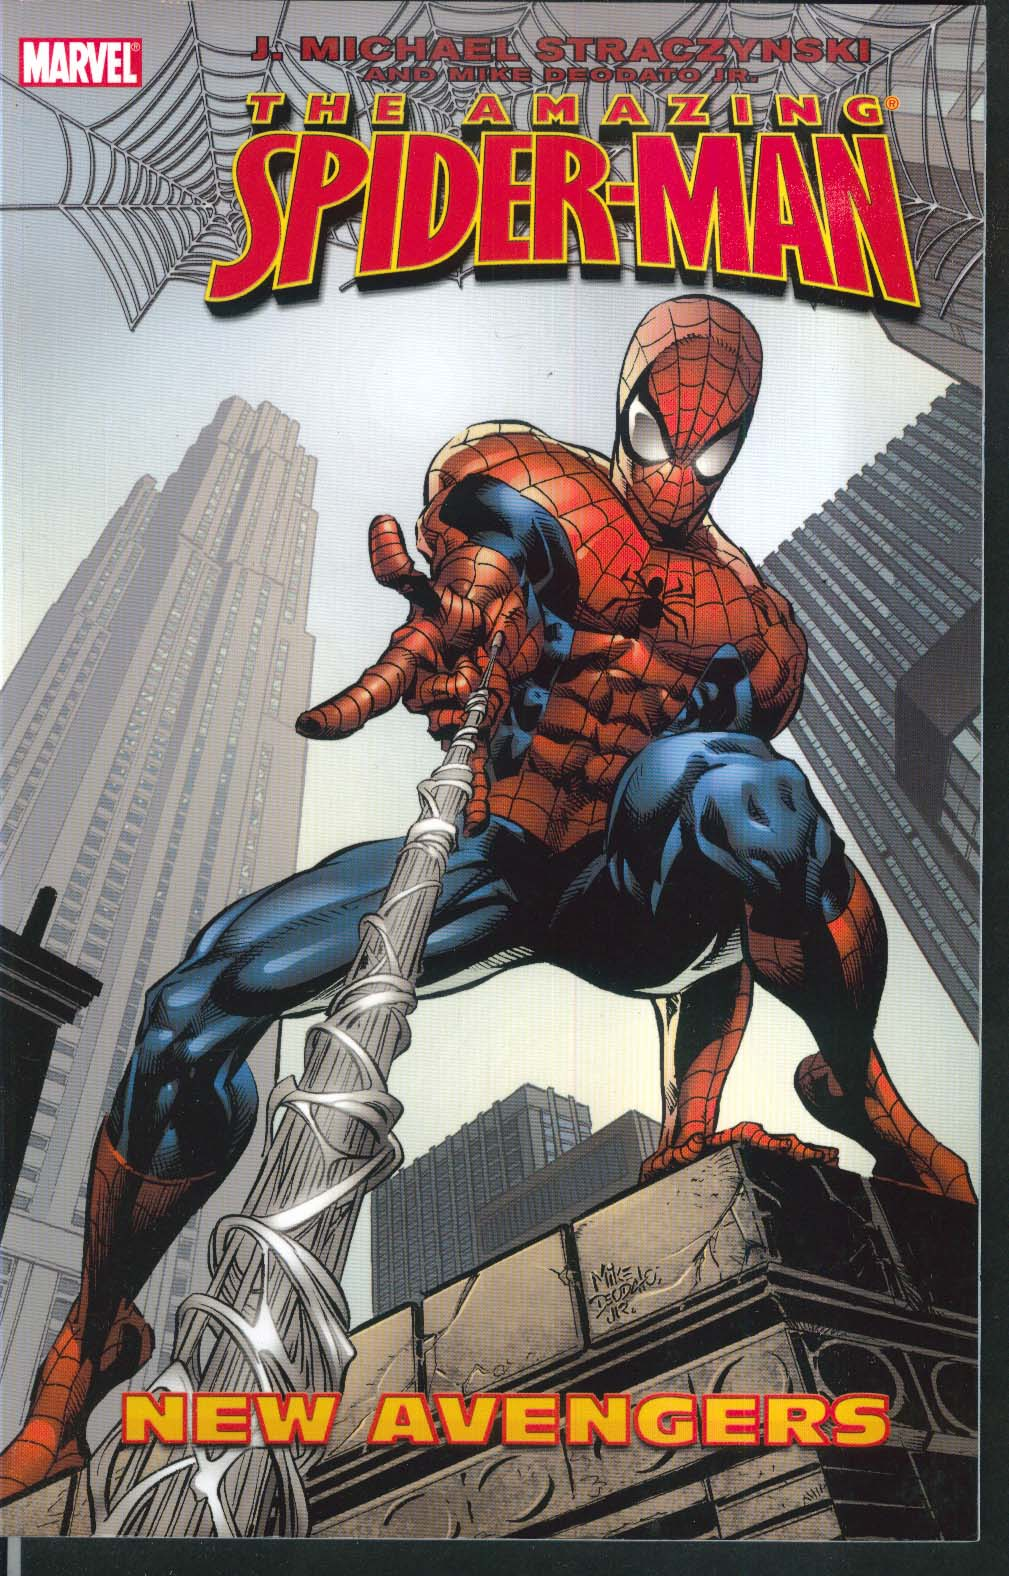 AMAZING SPIDER-MAN Vol 10 New Avengers Marvel Graphic Novel 1st Printing 2005